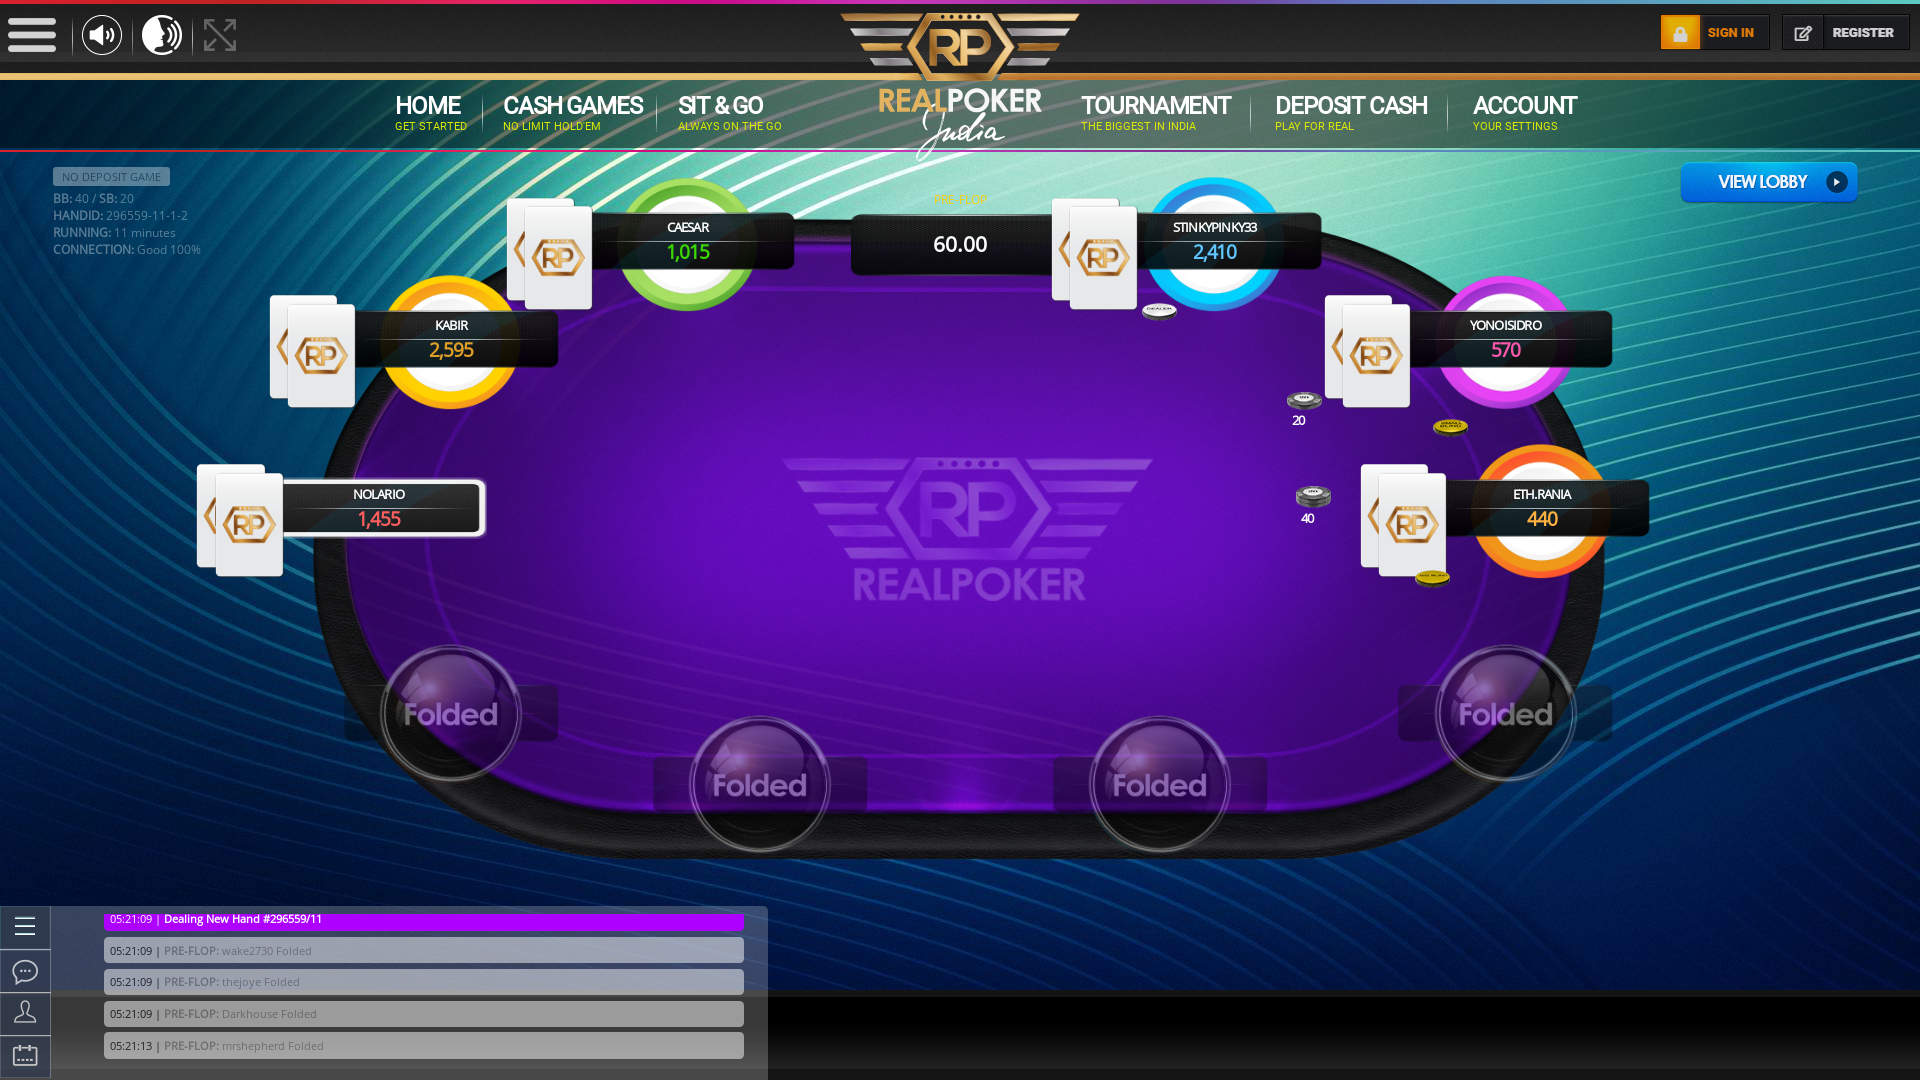 Indian online poker on a 10 player table in the 11th minute match up